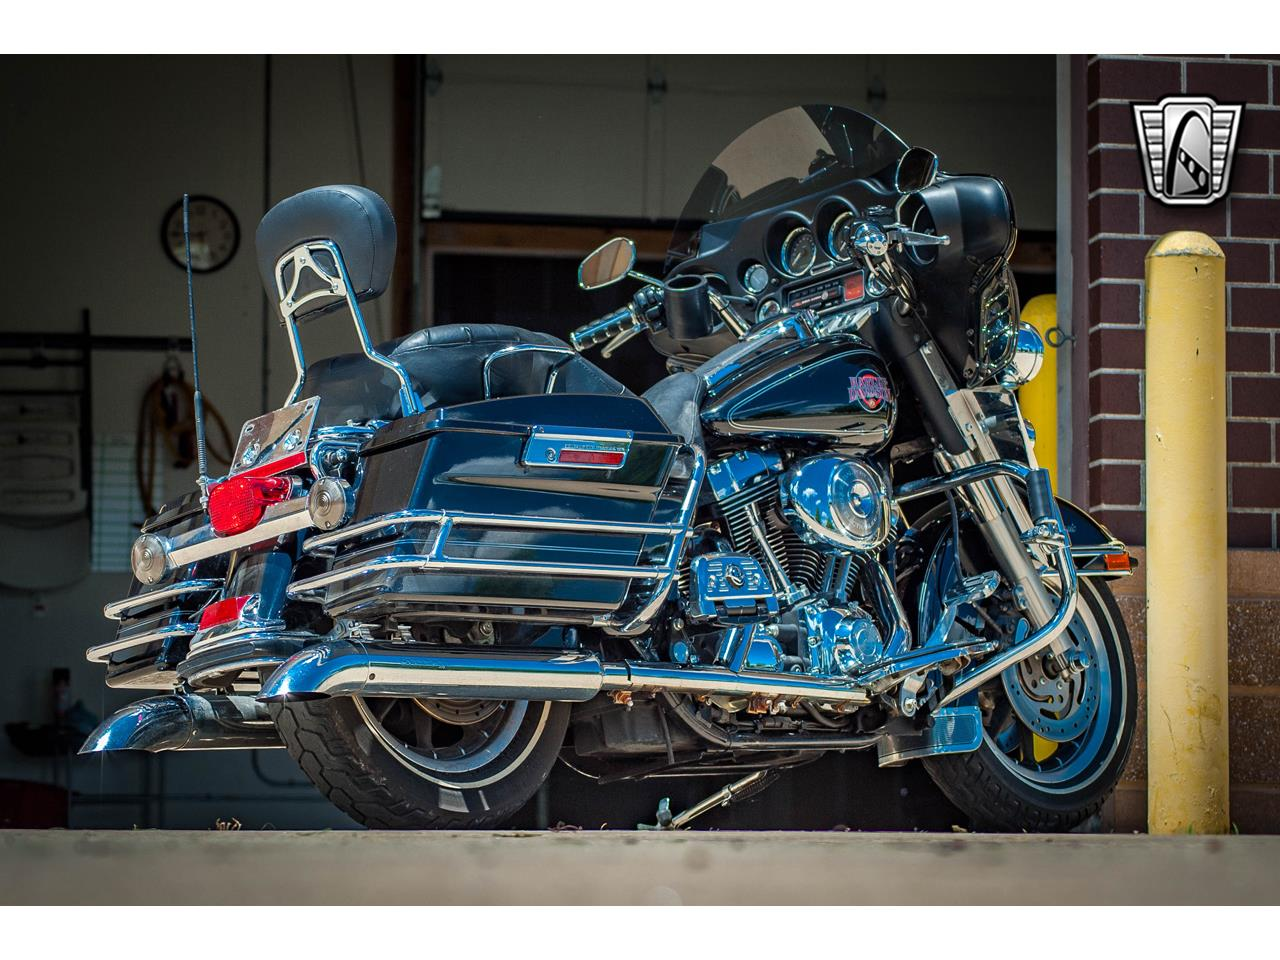 2004 Harley-Davidson Motorcycle for sale in O'Fallon, IL – photo 6